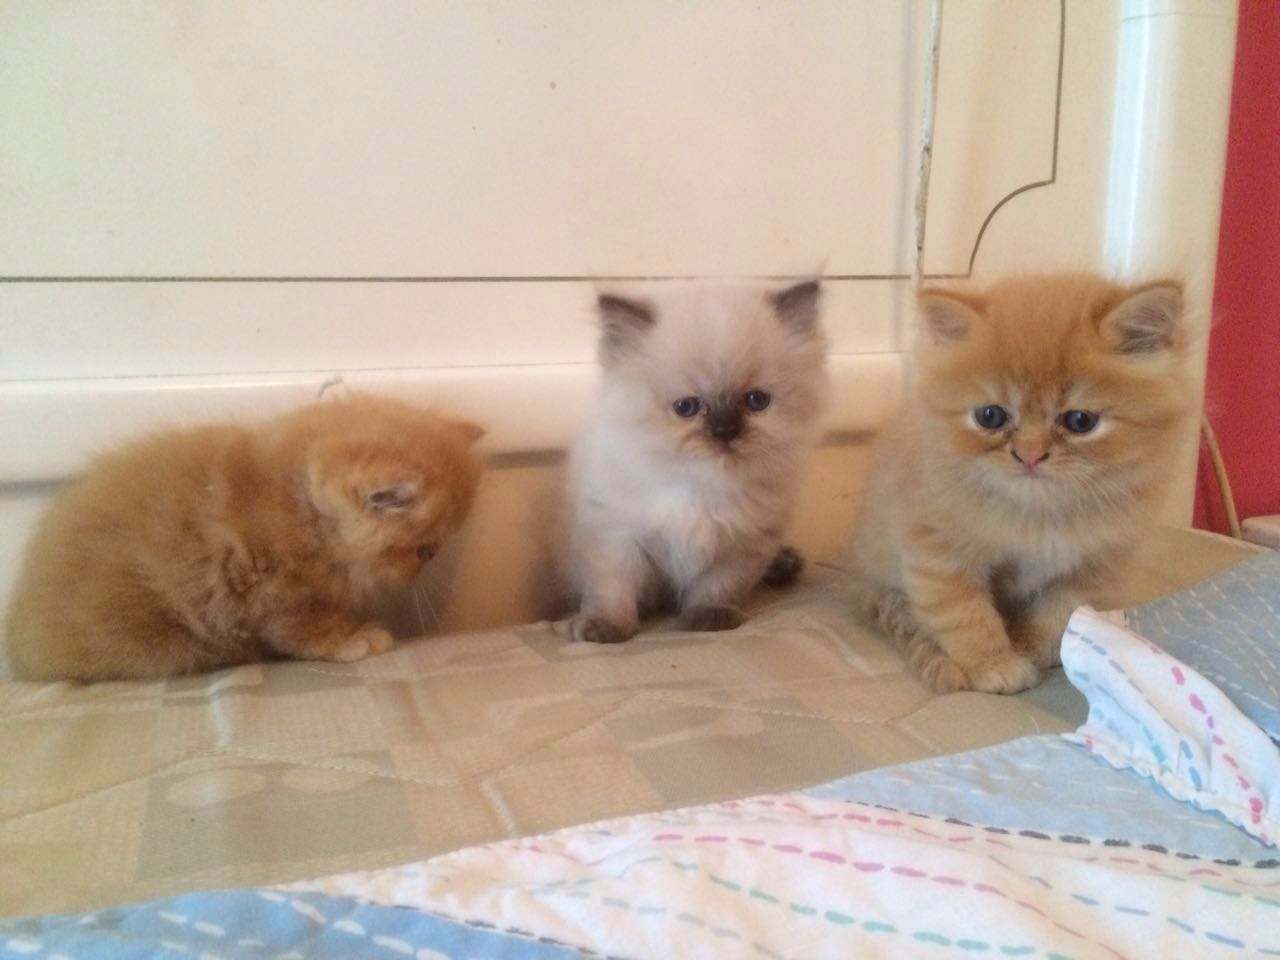 Pet related post in Lebanon: 3 kittens for sale..